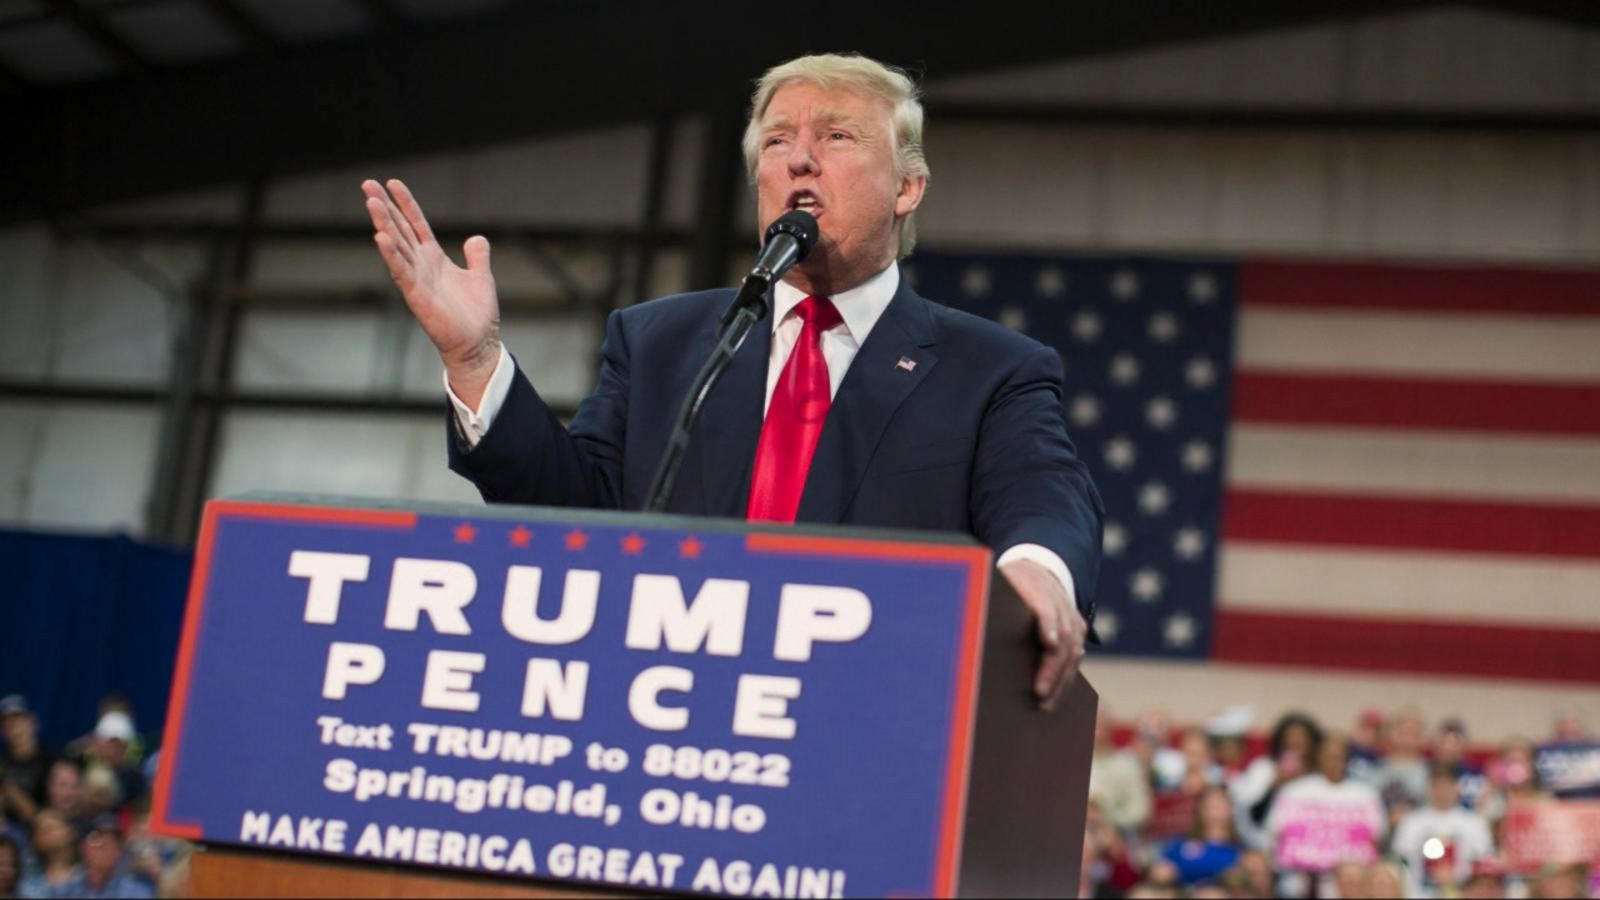 VIDEO: Donald Trump Attends Several Events in Battleground State Ohio